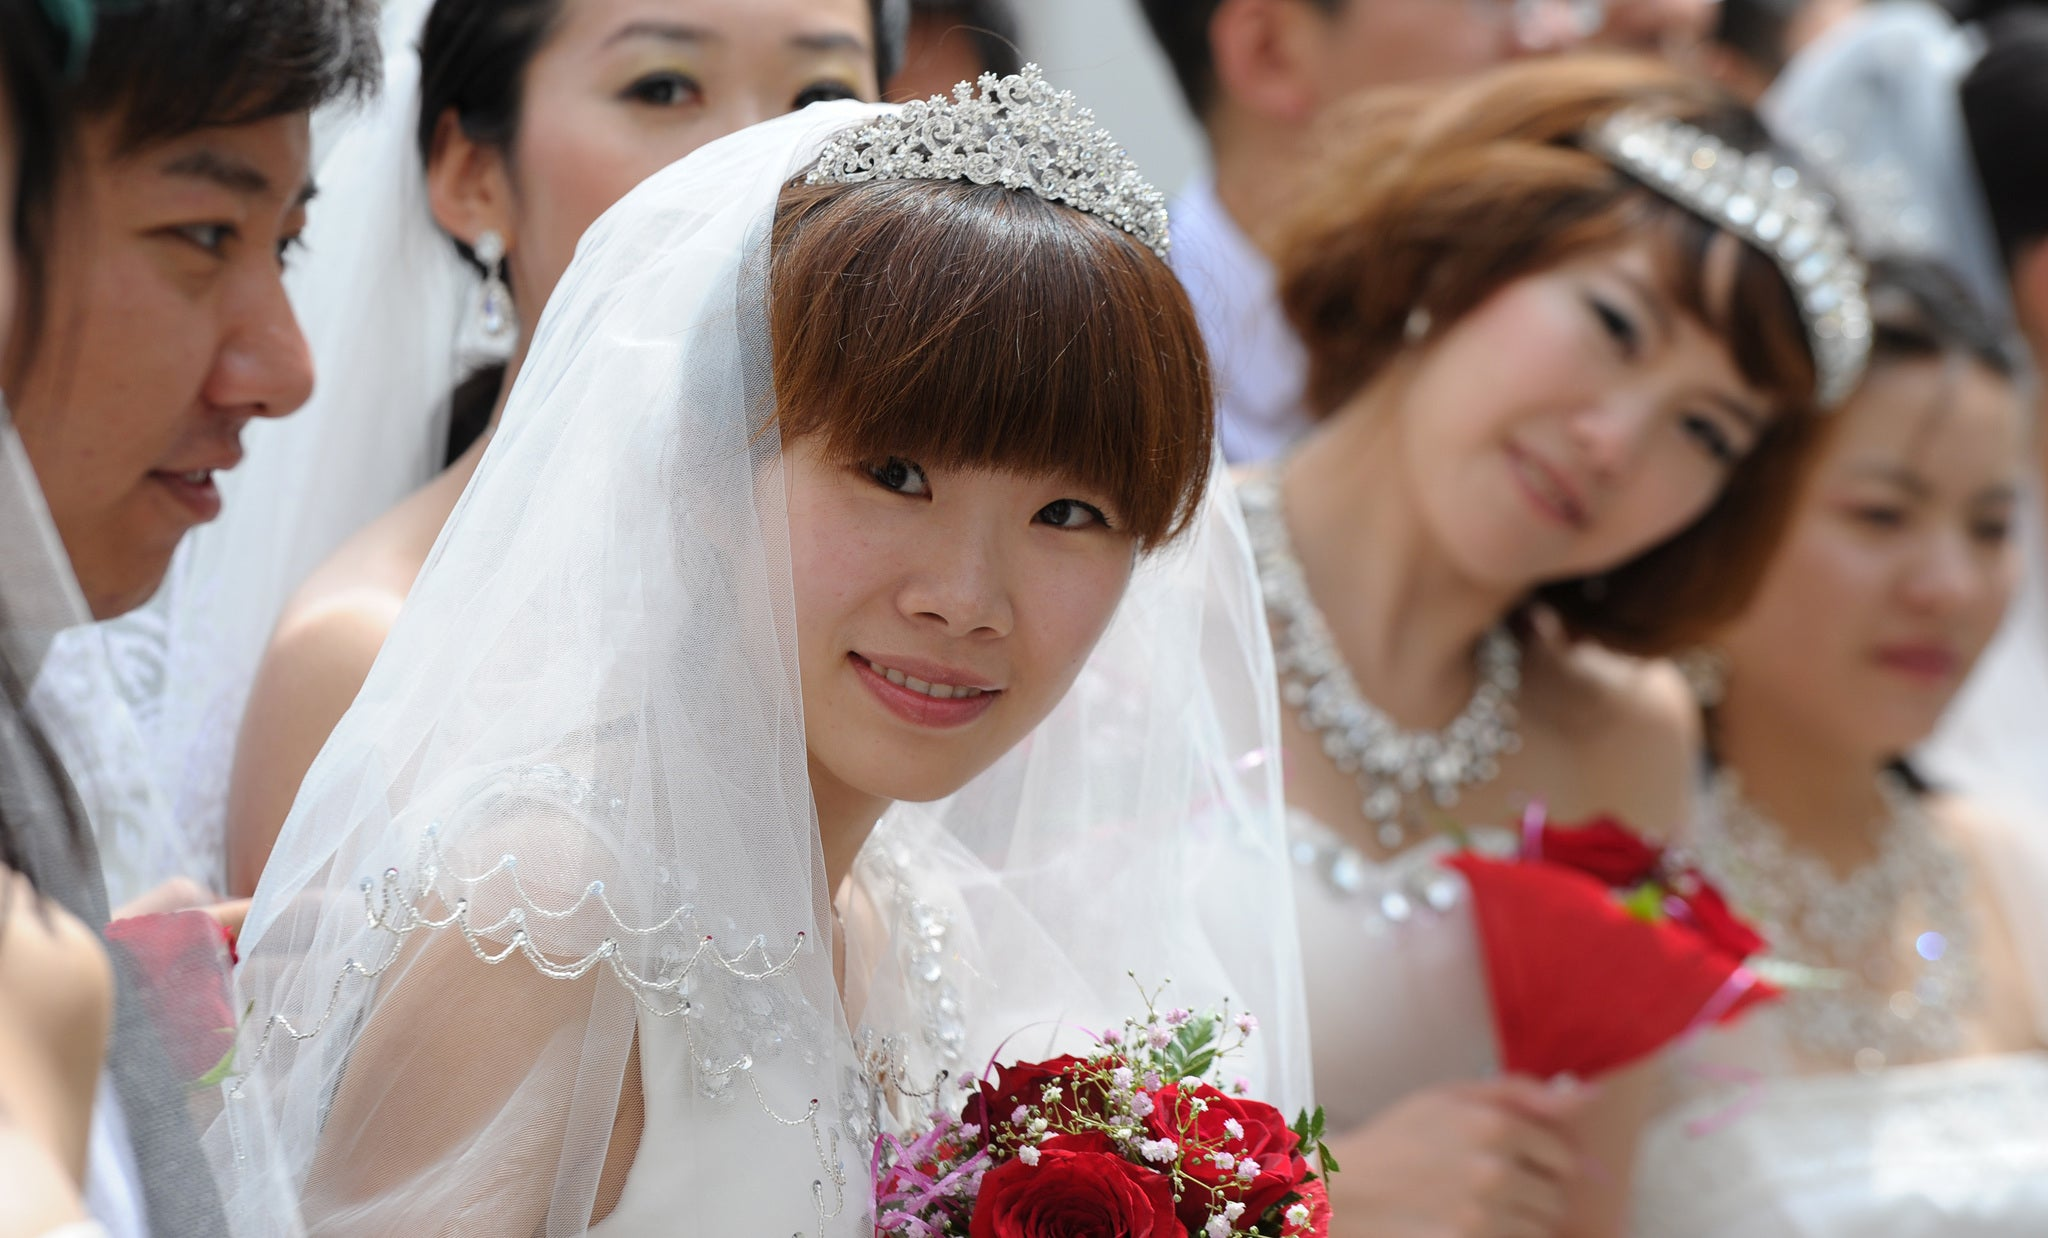 Thousands of female graduates across China ditch the mortar board for wedding dresses